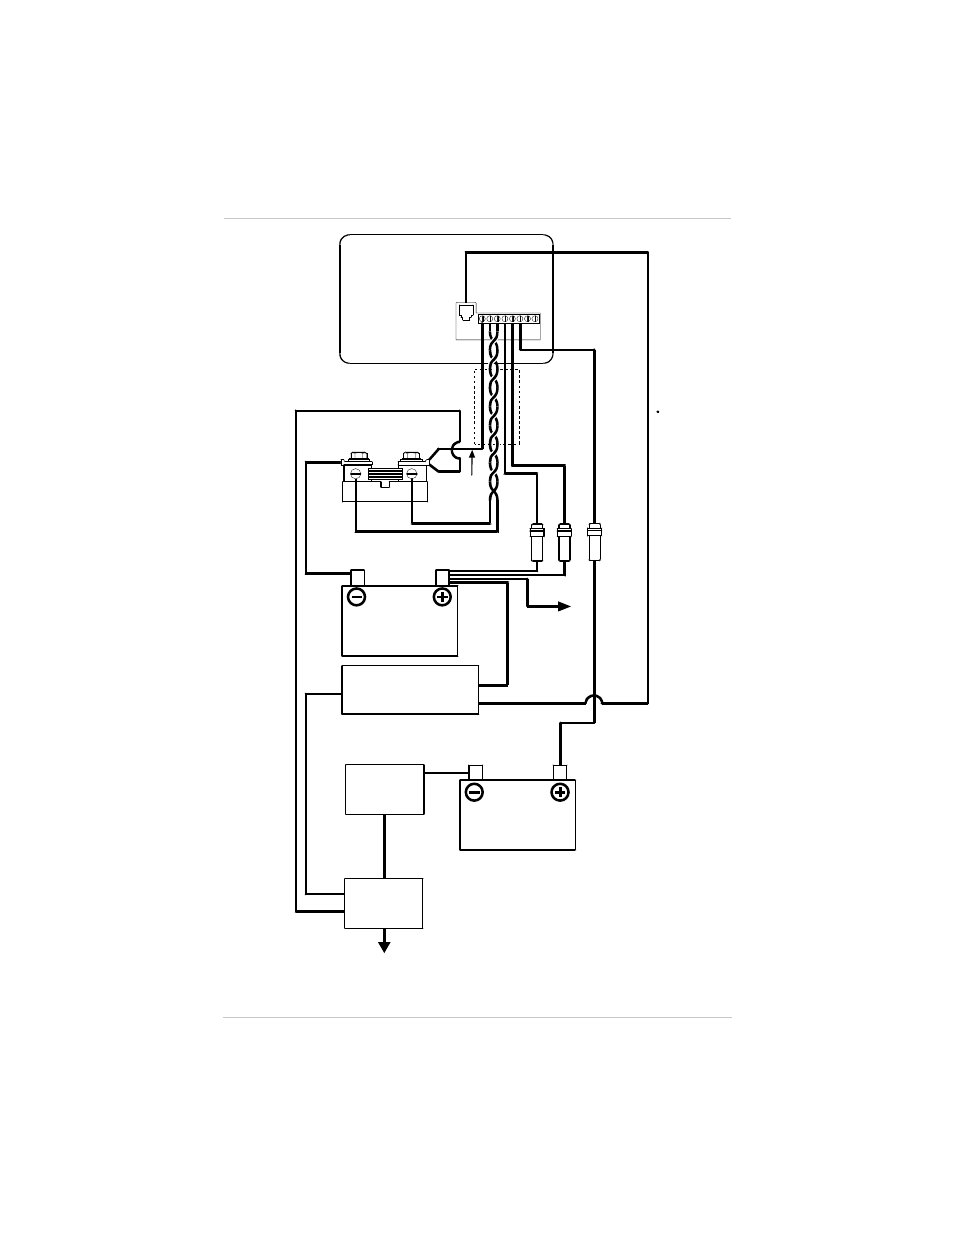 System overview (wiring), Figure 2, Figure 2 system